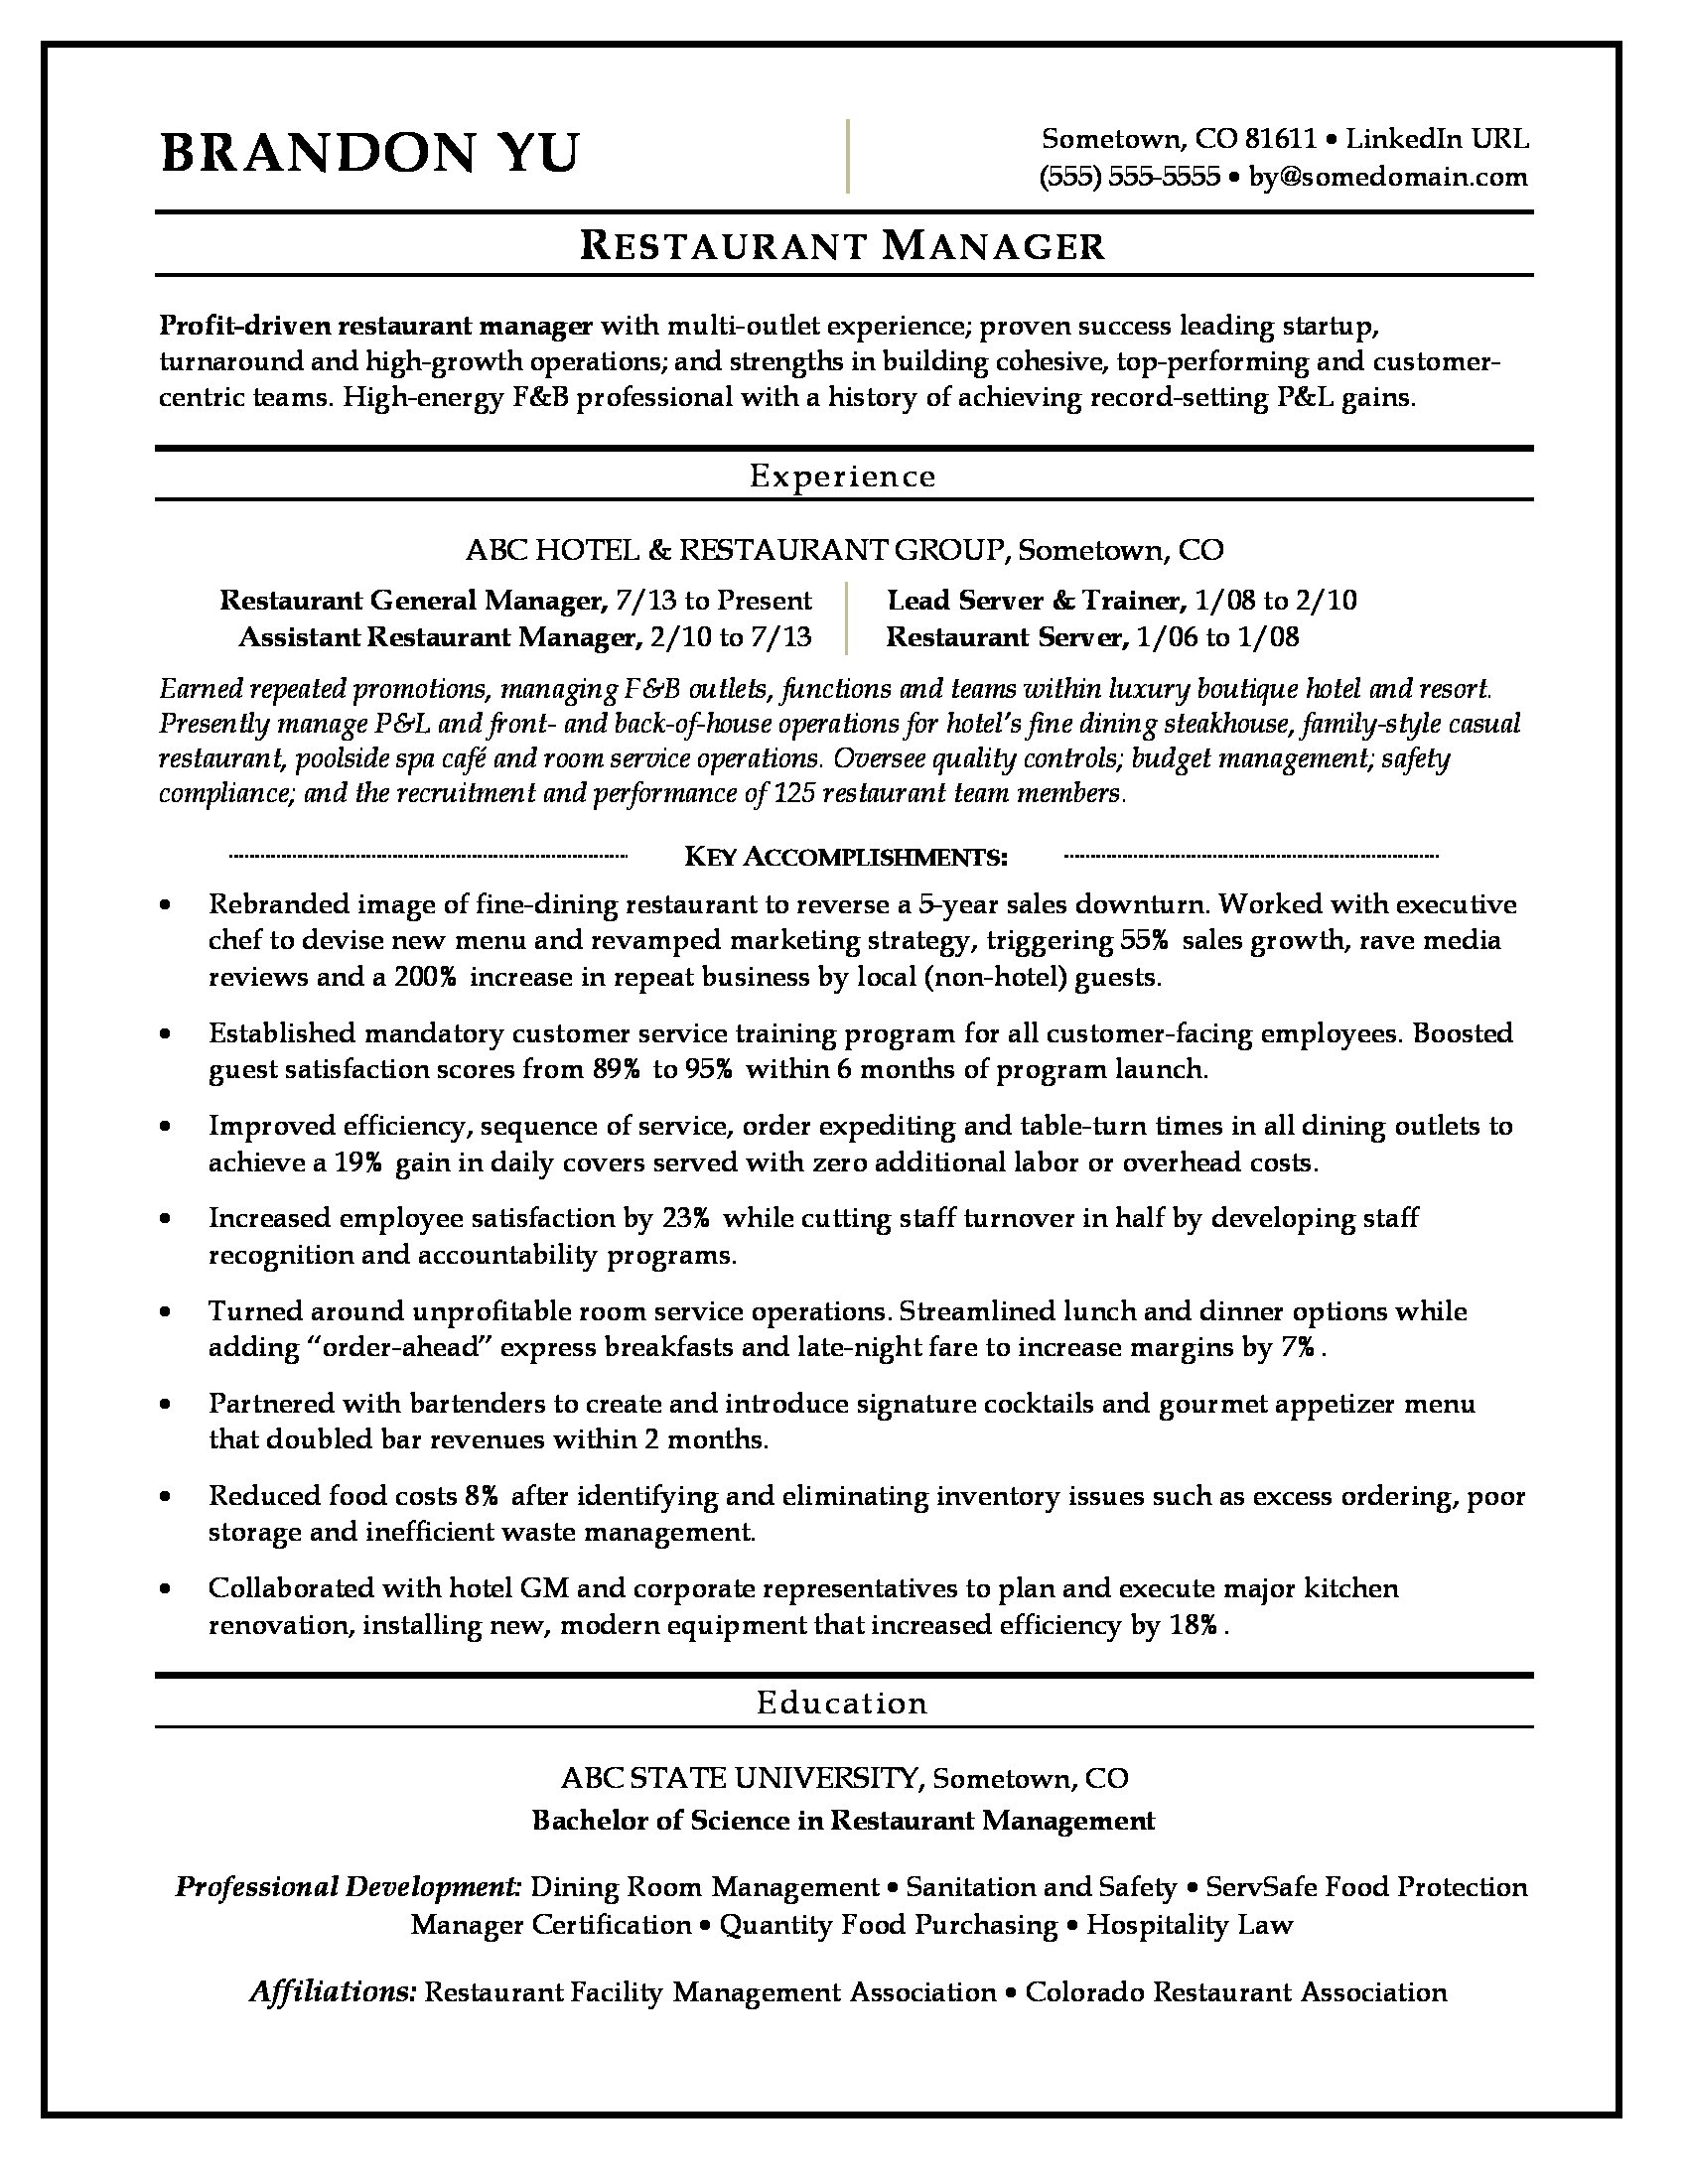 Restaurant Manager Resume Sample